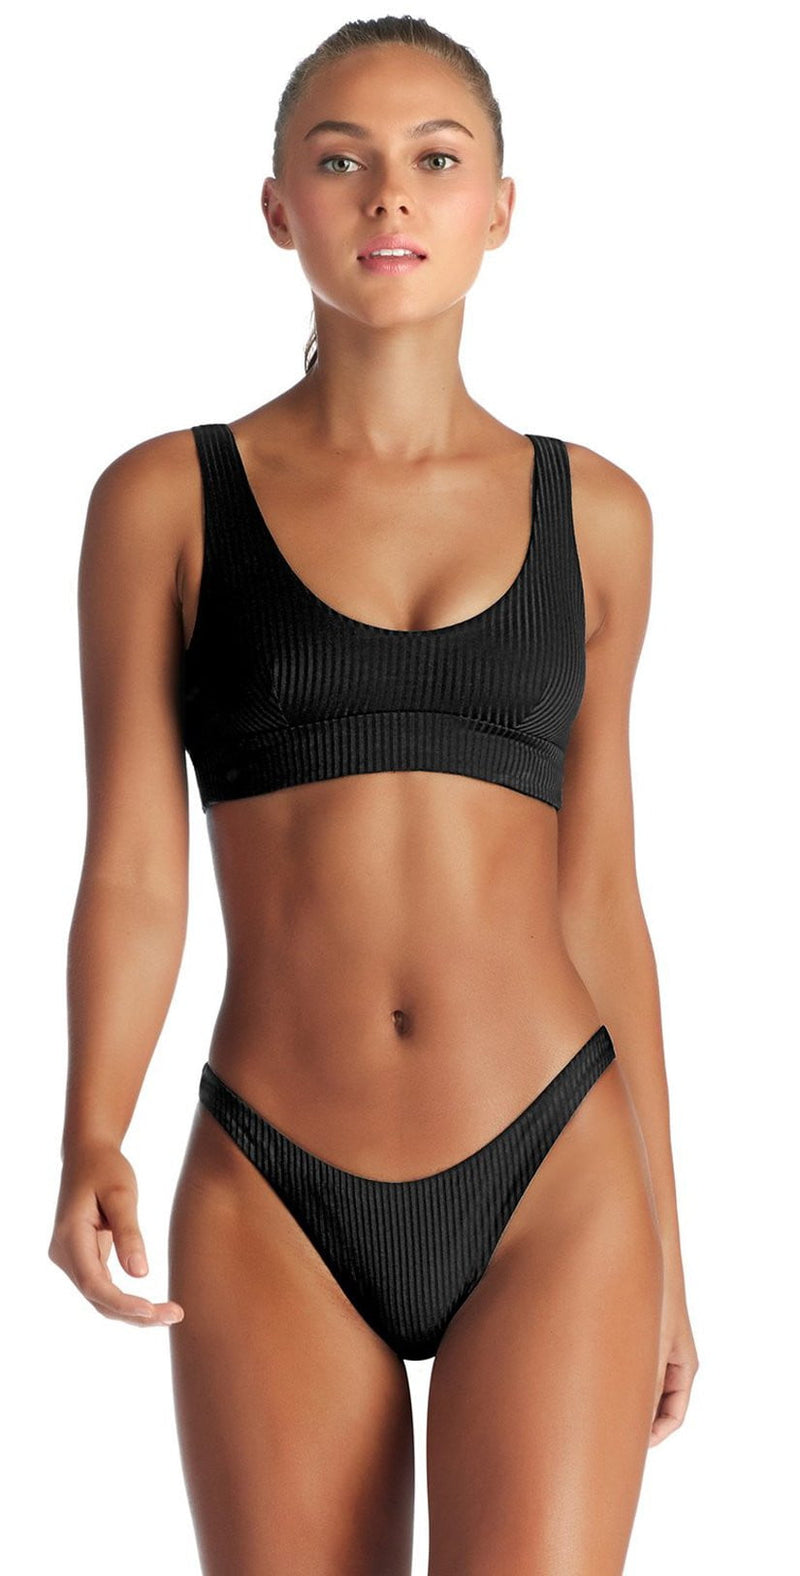 Vitamin A Sienna EcoRib Bikini Top in Black 809T ERB: